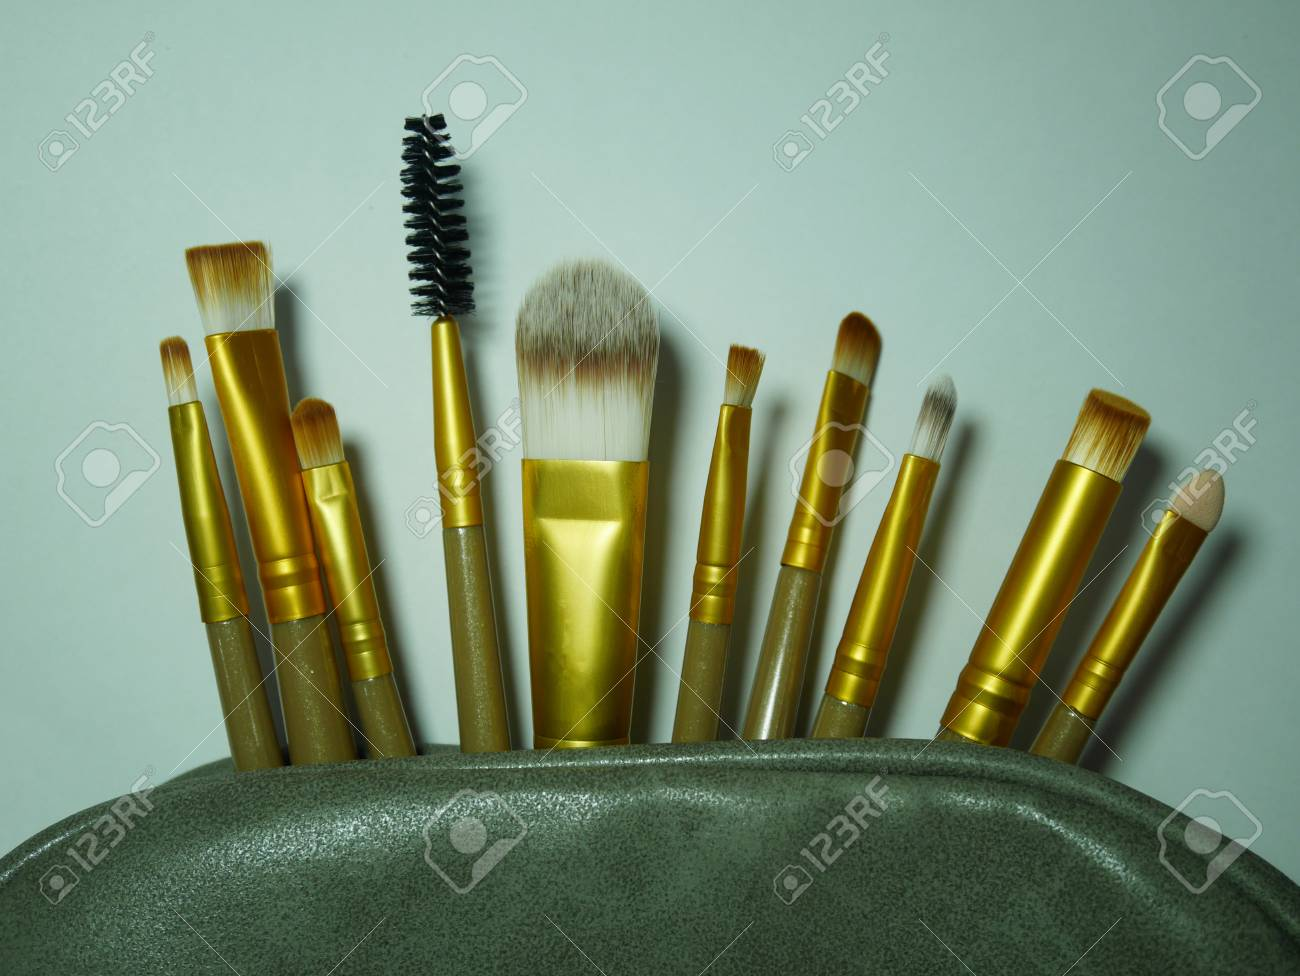 many brown and gold makeup brushes in the green cosmetic bag